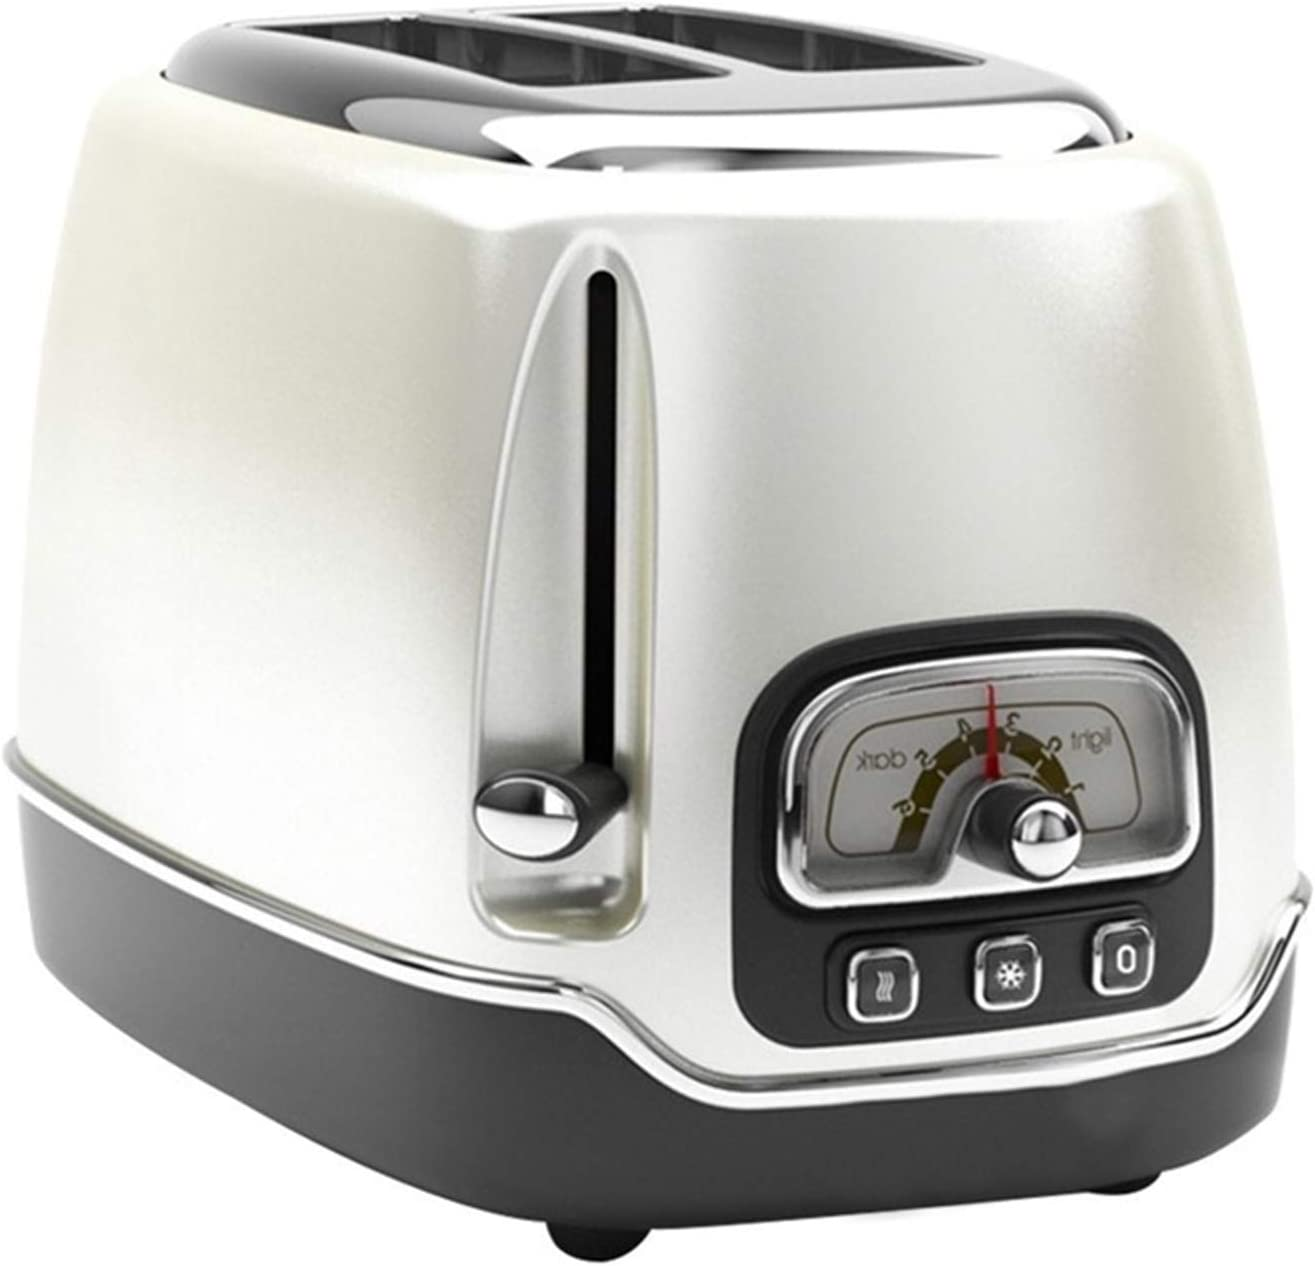 Toasters-Metal body, 6-speed temperature adjustment,Cancel, Defrost & Reheat Functions,Easy Clean Slide Out Crumb Tray